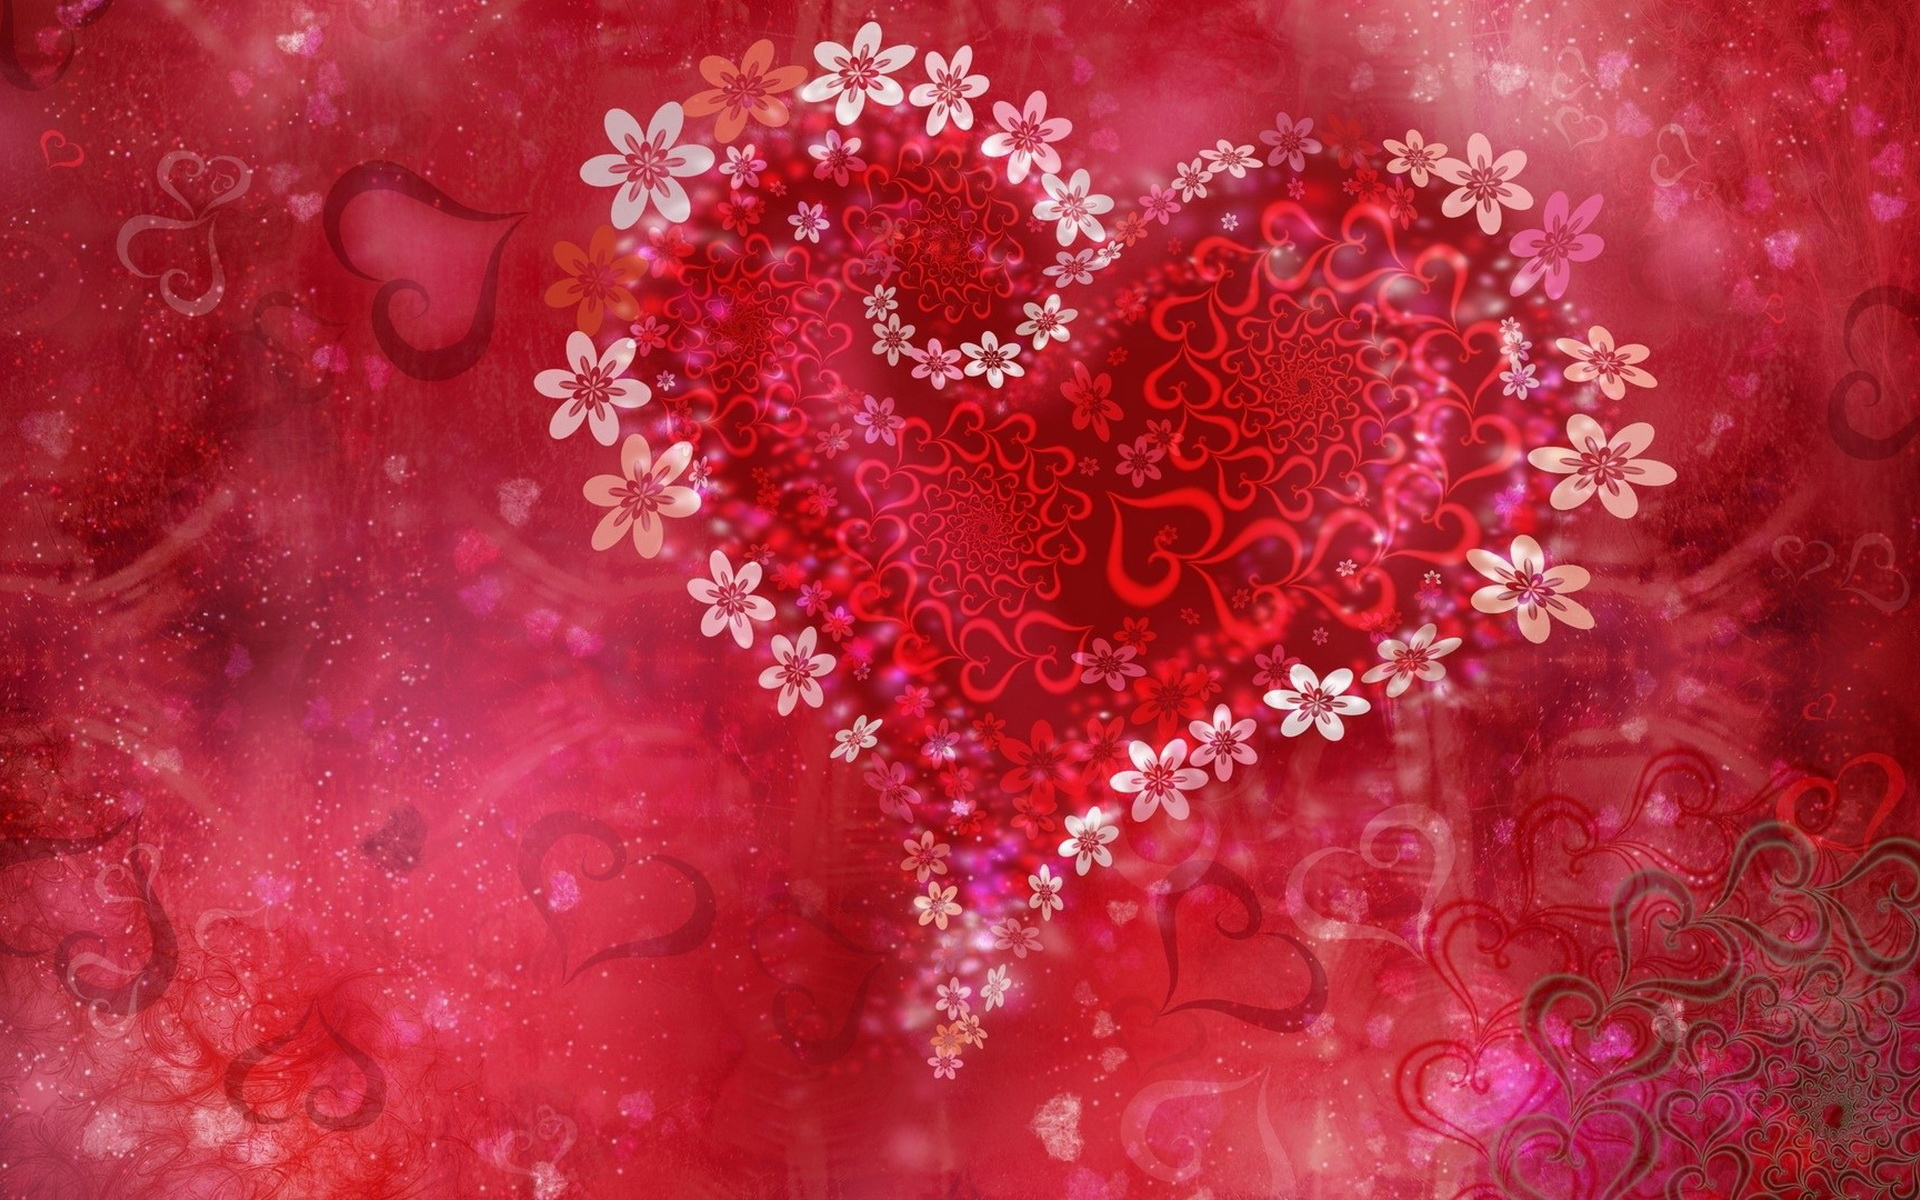 Google valentine wallpaper and screensavers wallpapersafari - Background for valentine pictures ...